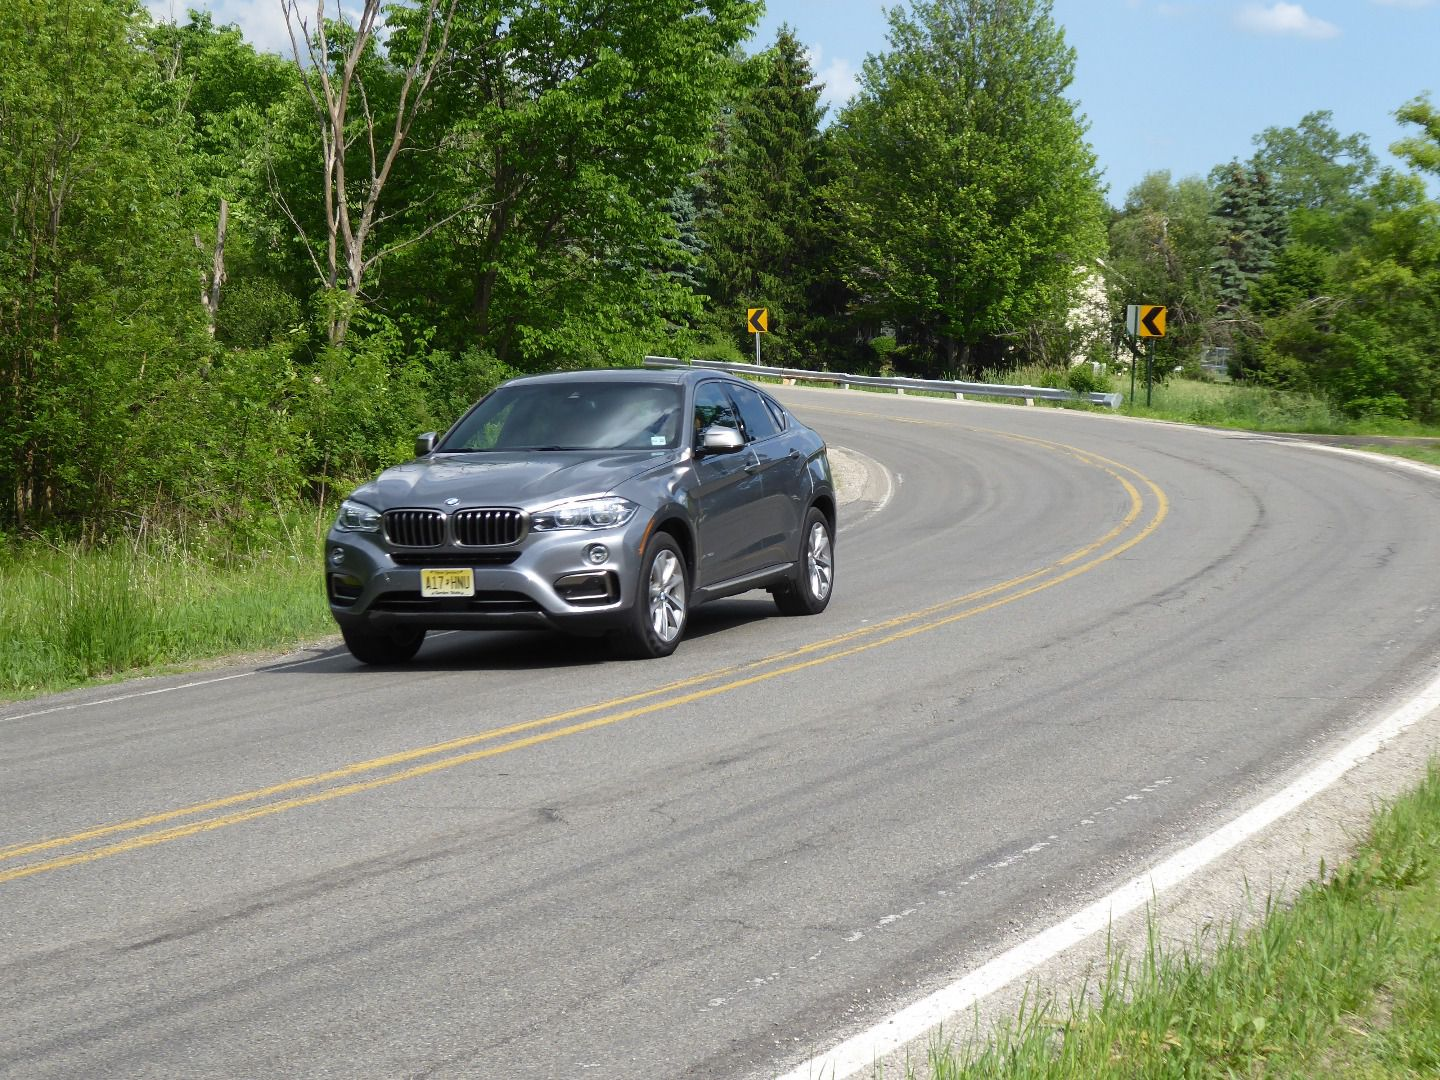 2018 BMW X6 Road Test And Review